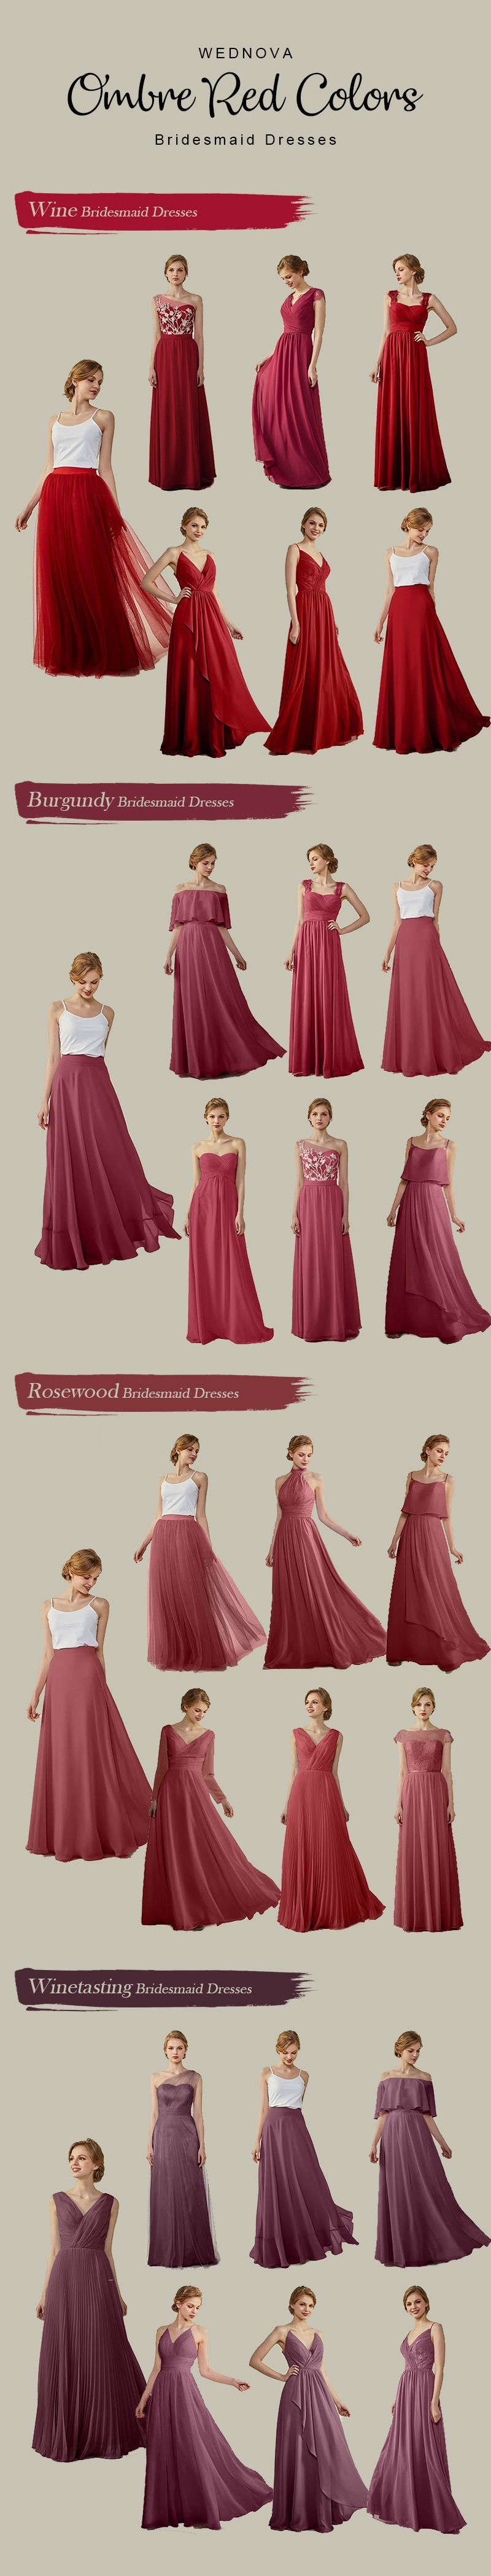 ombre red color bridesmaid dresses chiffon different styles